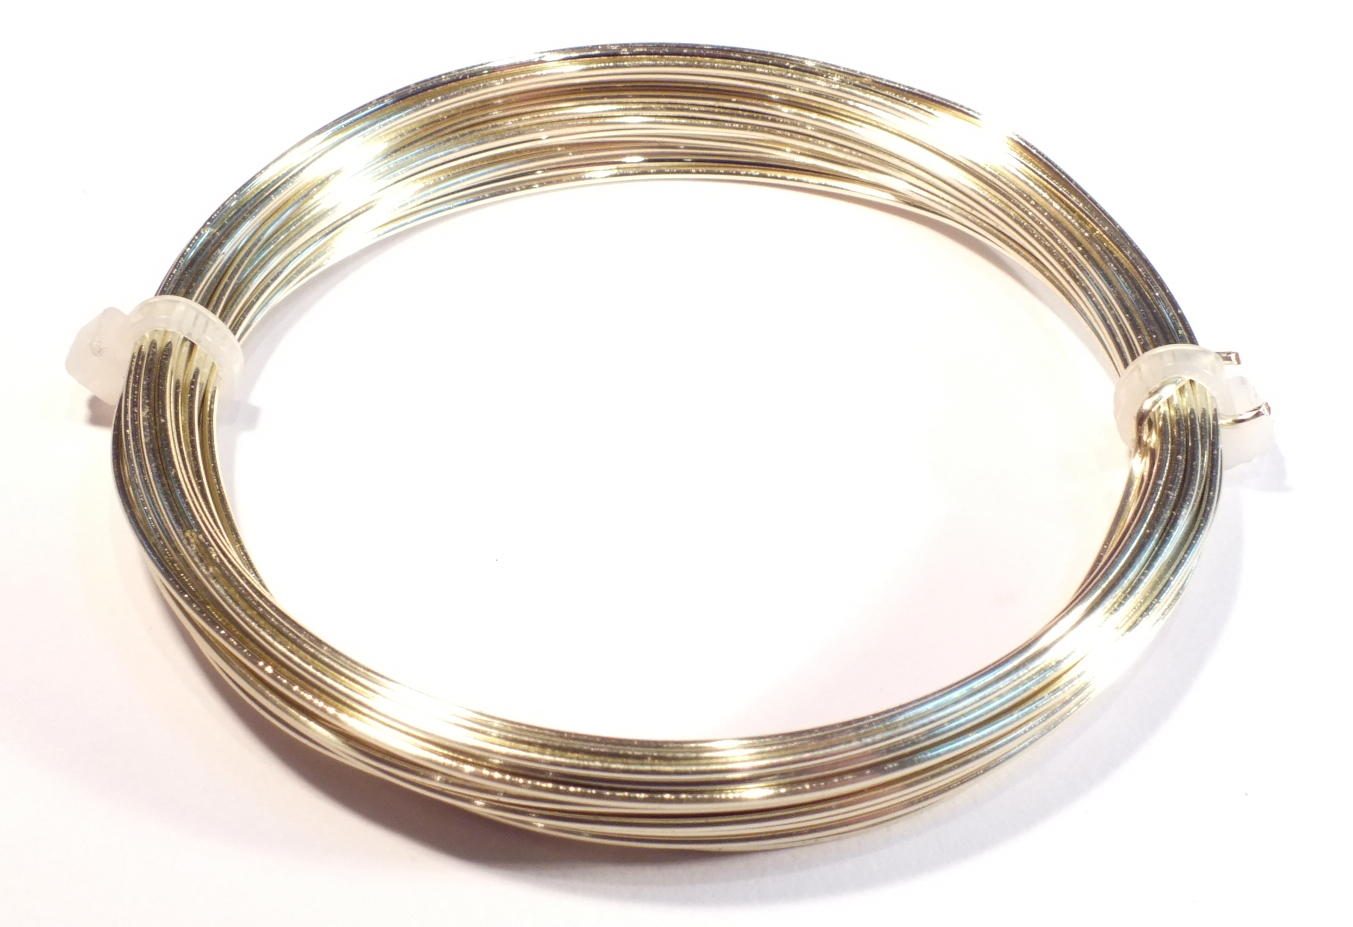 Supa Champagne Craft Wire 0.5mmx15m – The Beadster